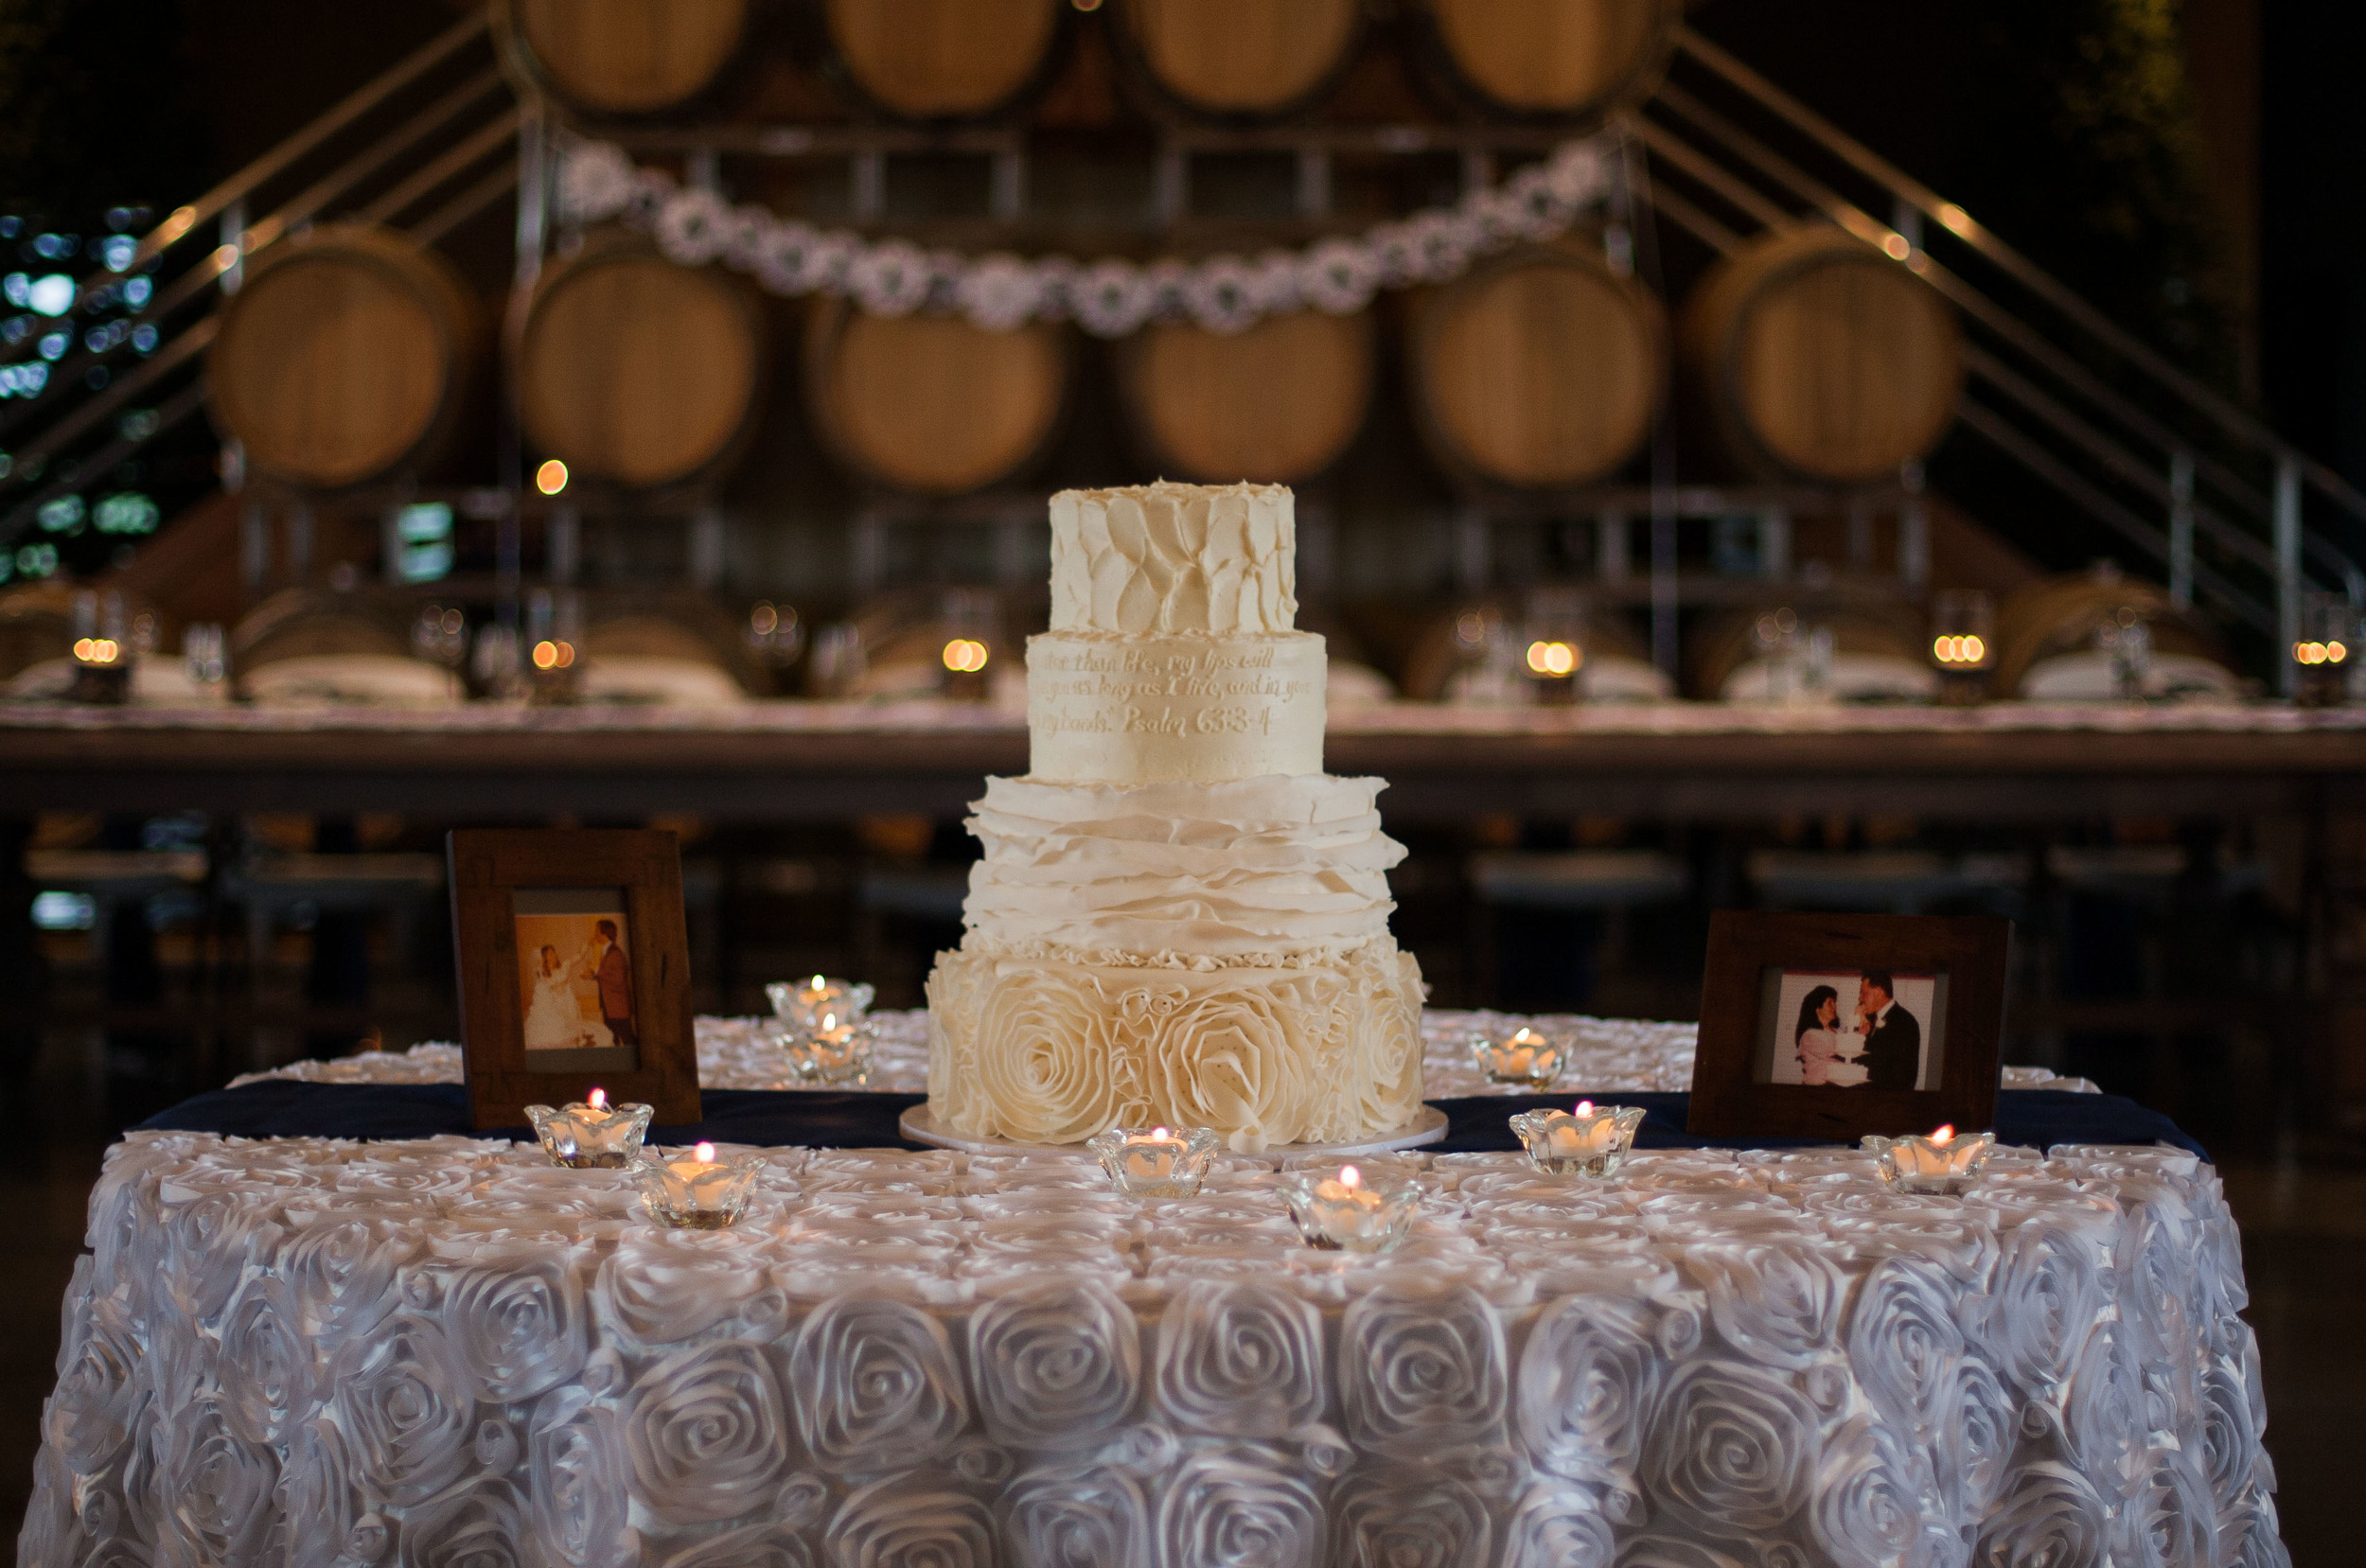 The beautiful wedding cake was white on white with scripture.